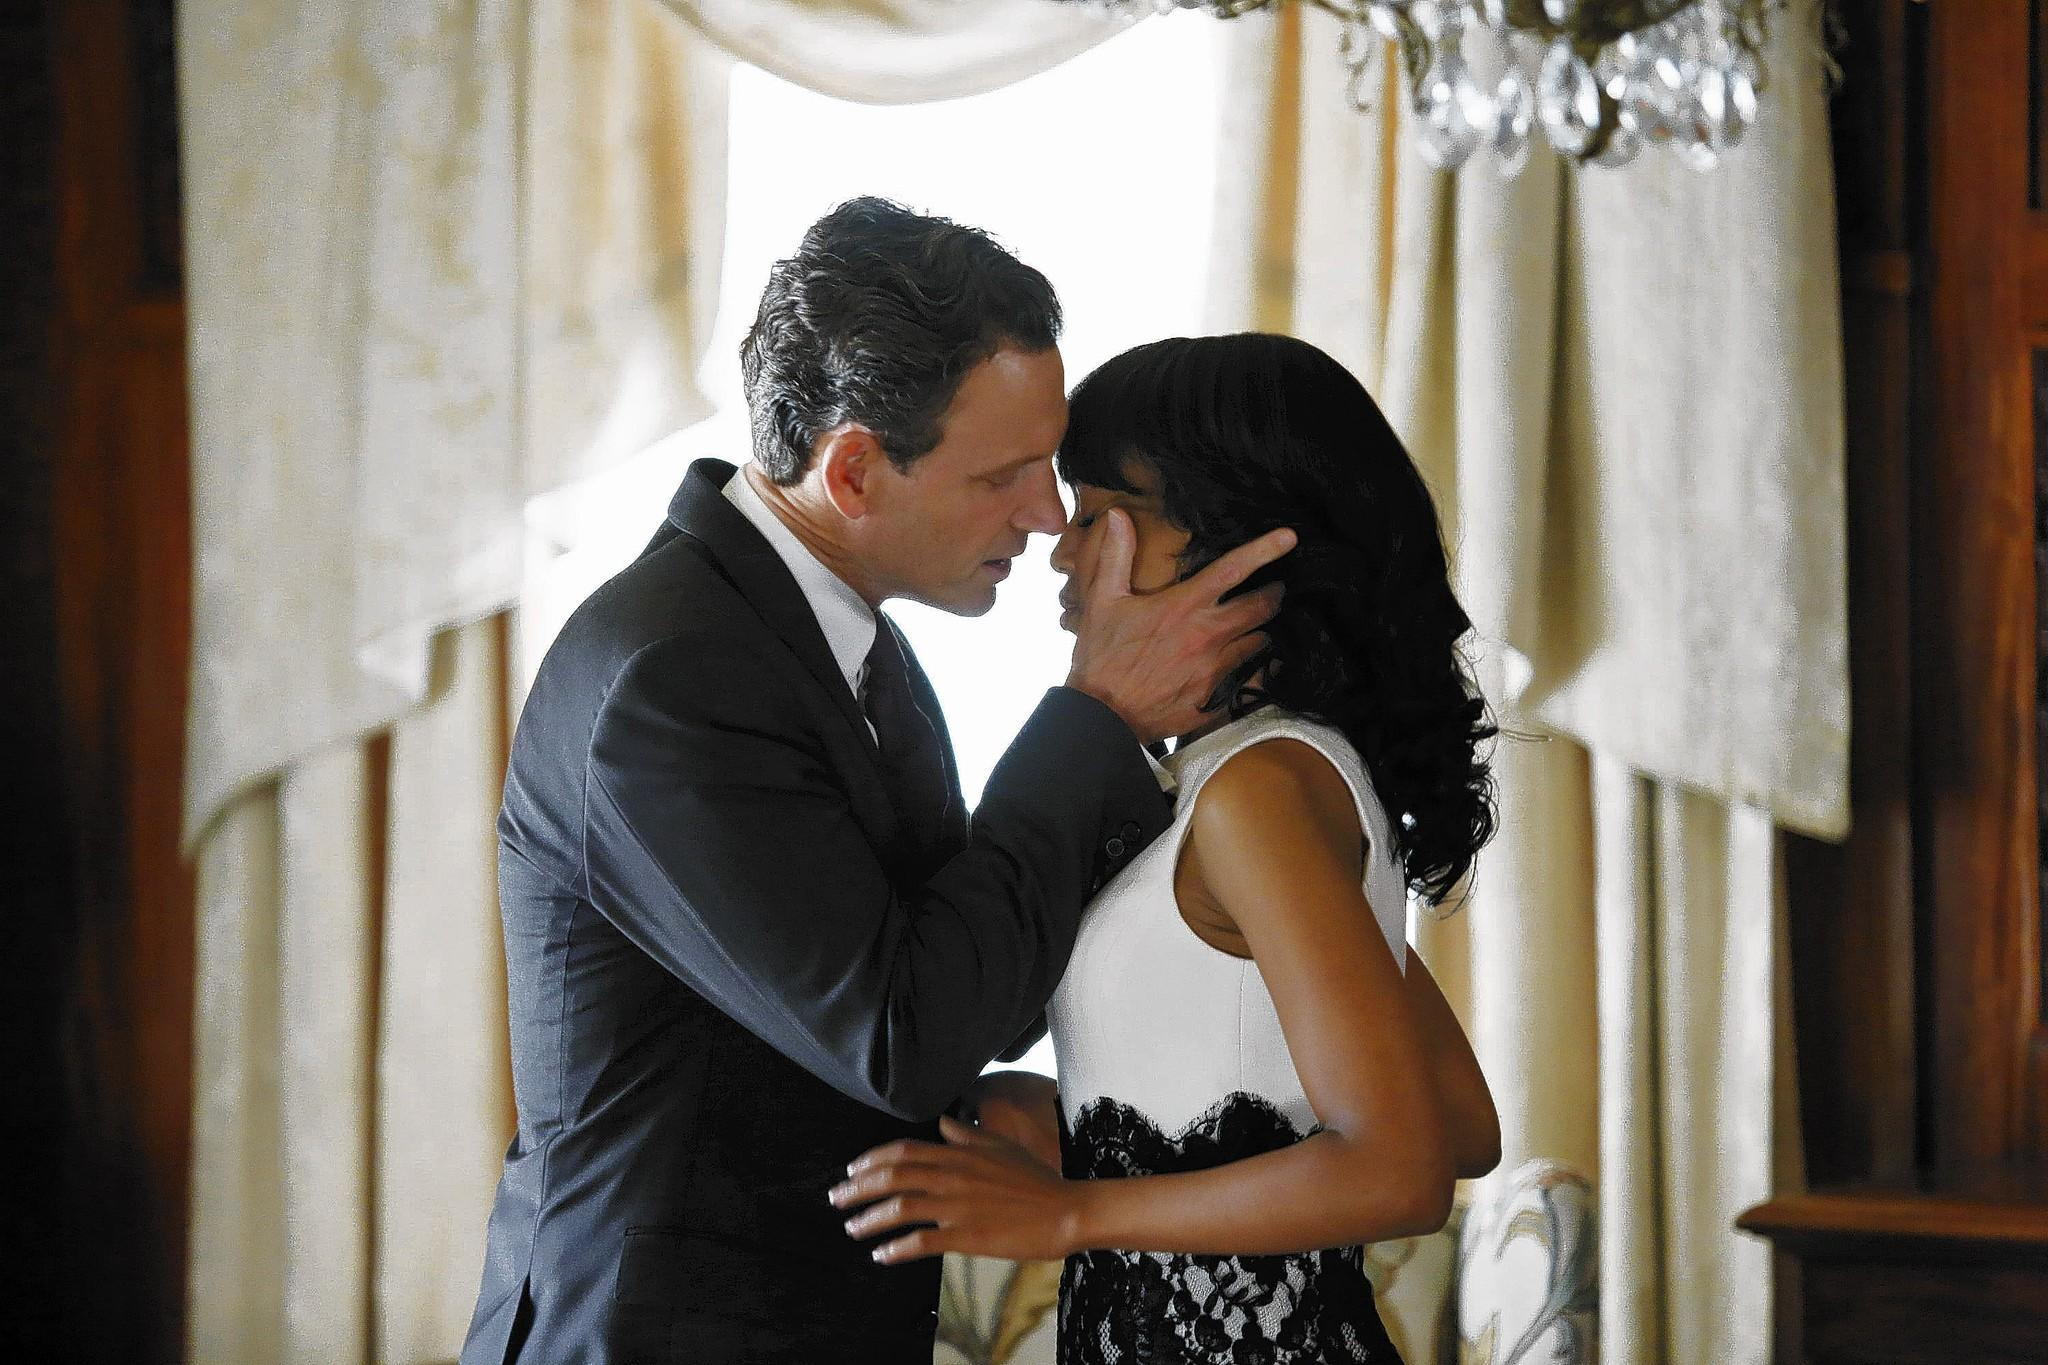 """Scandal,"" starring Tony Goldwyn and Kerry Washington, is one of the highest-rated shows on TV because it is so far removed from reality."